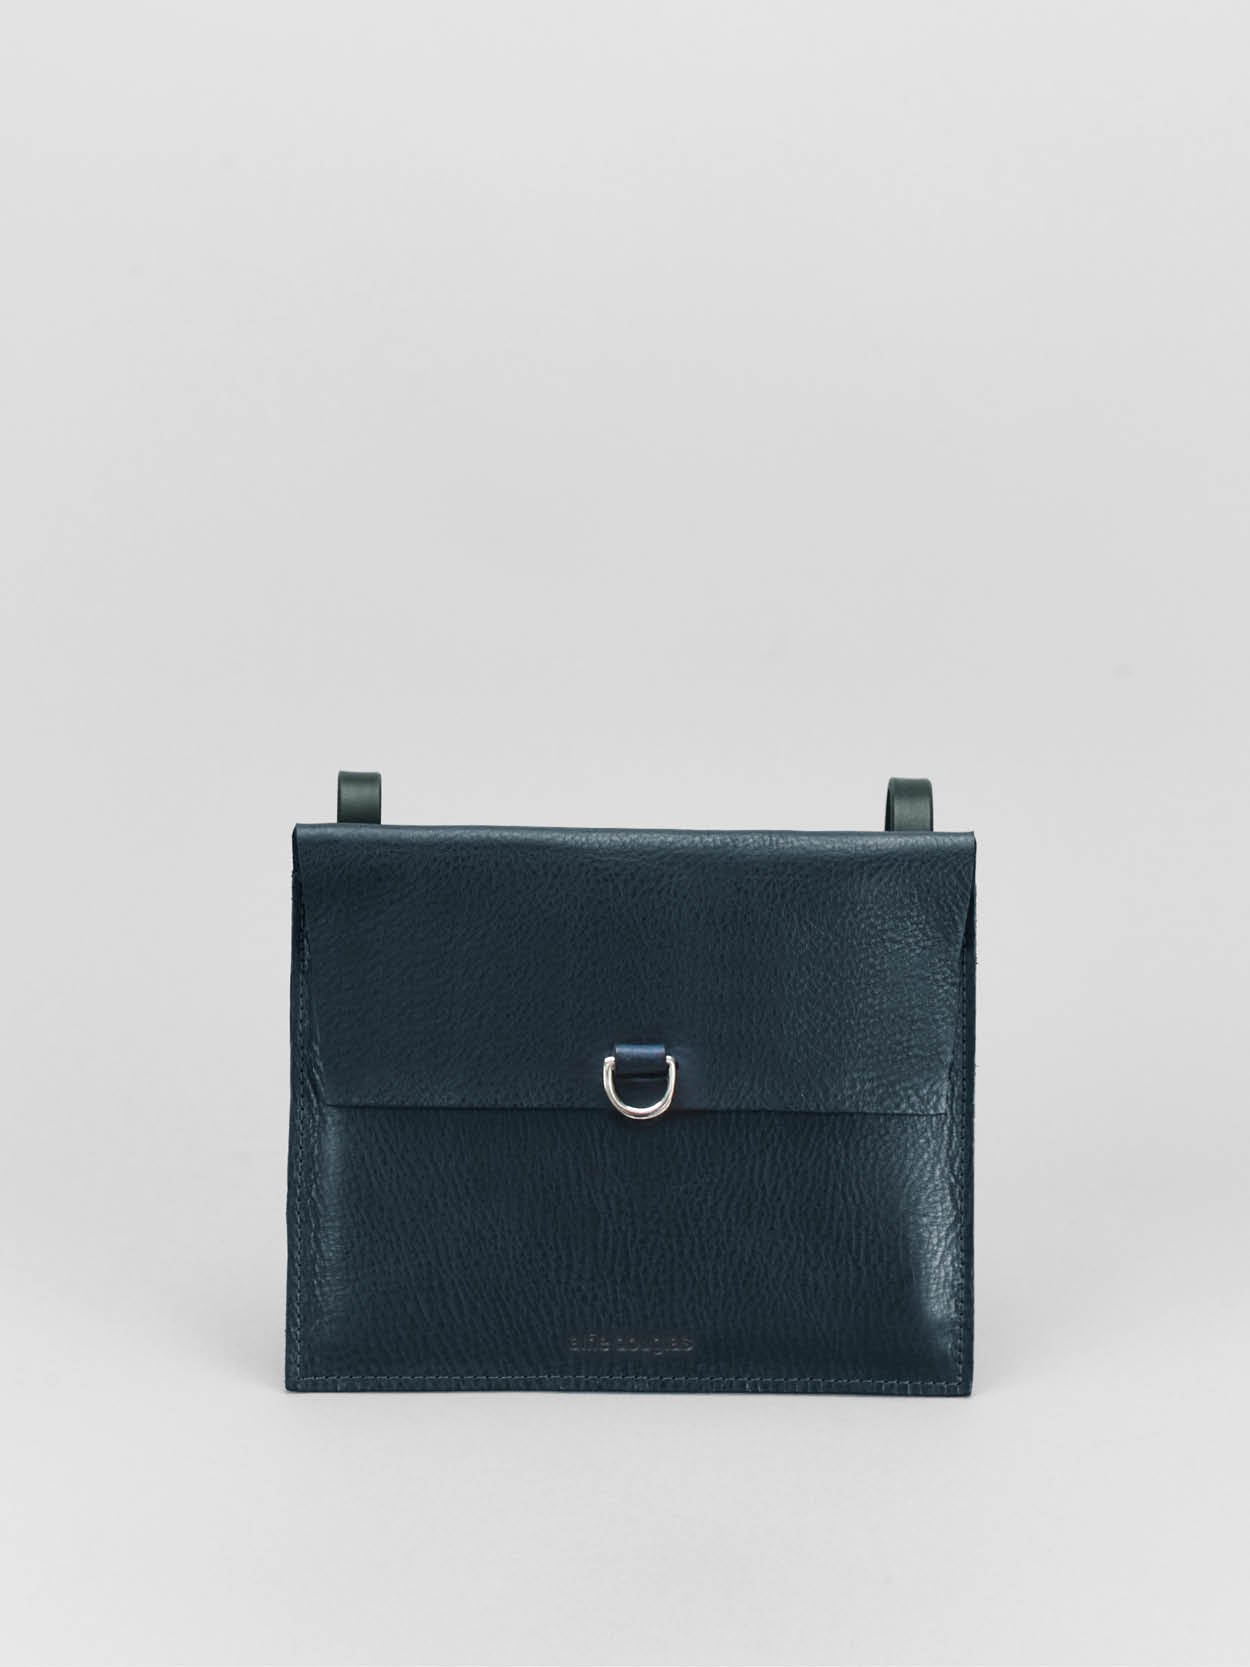 Alfie Douglas minimal leather pouch handmade in england